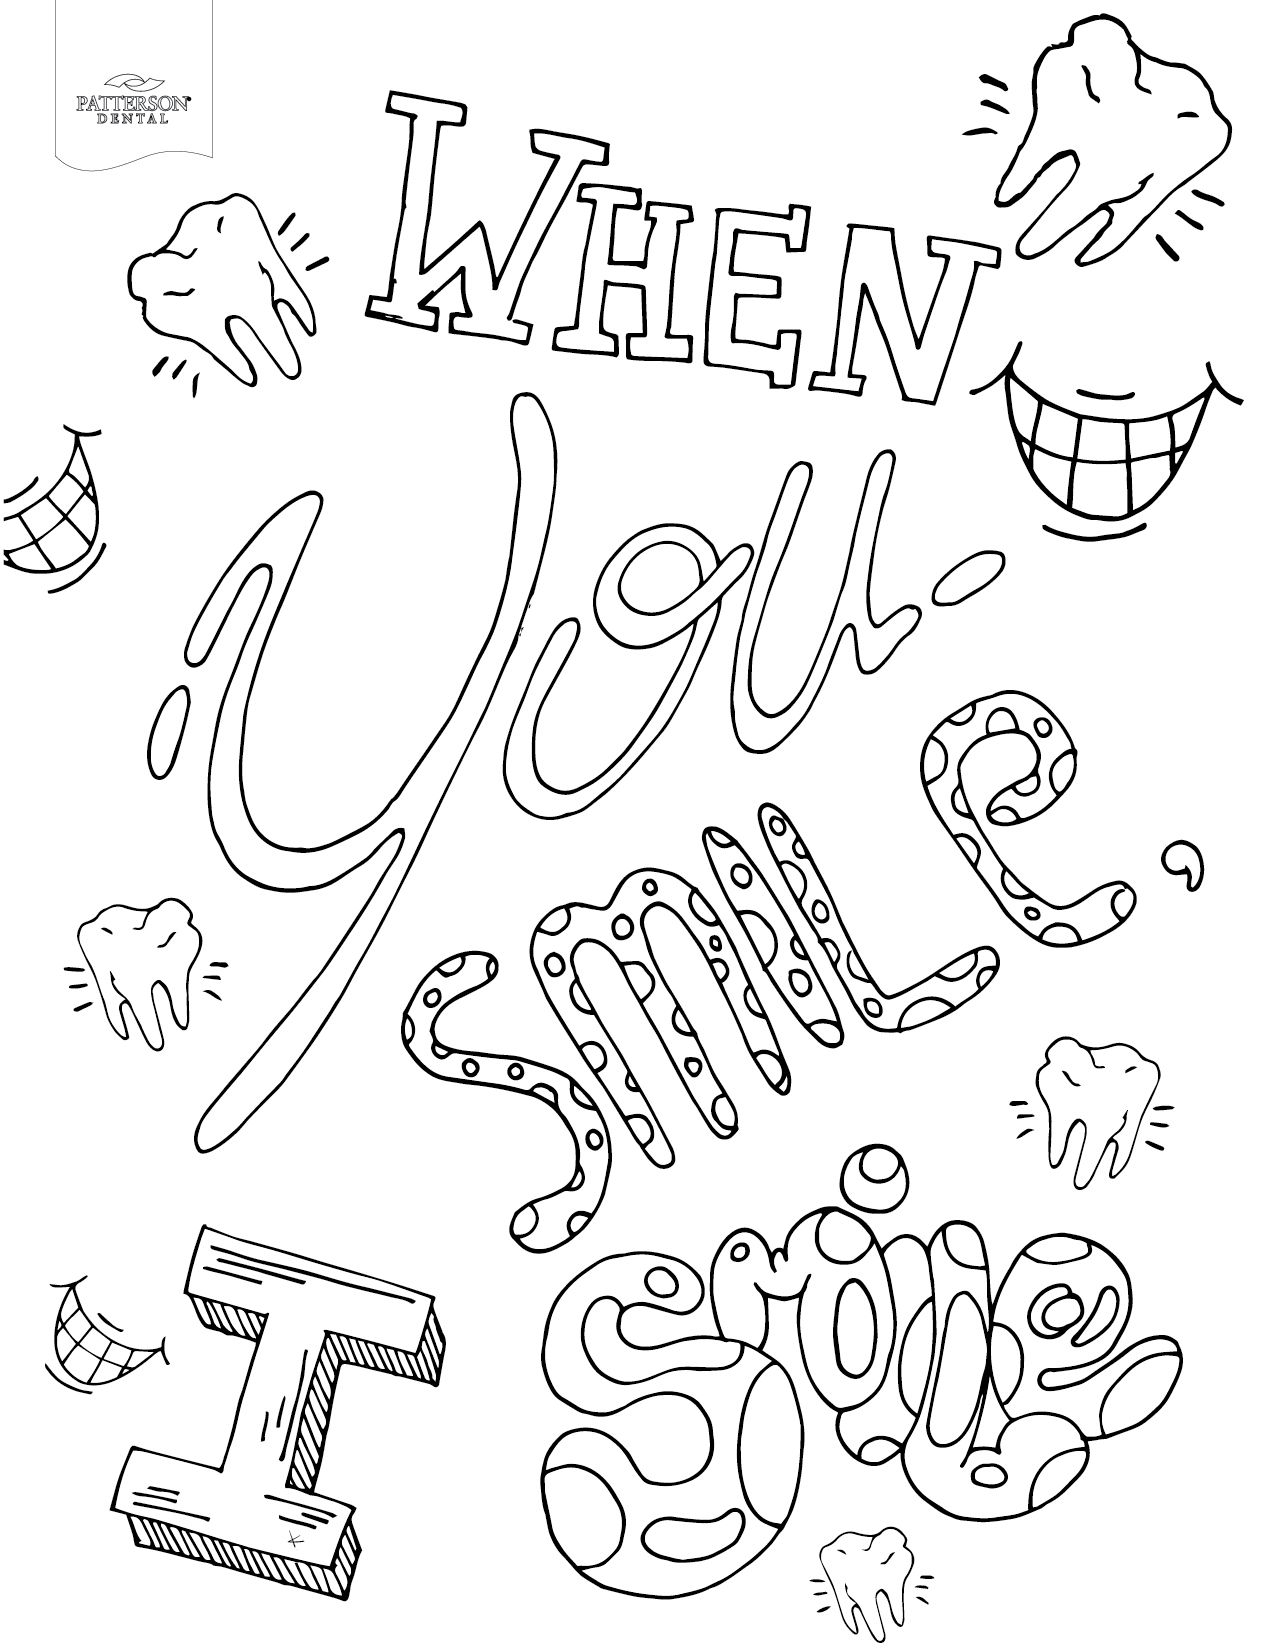 10 Toothy Adult Coloring Pages Printable Adult Coloring Book